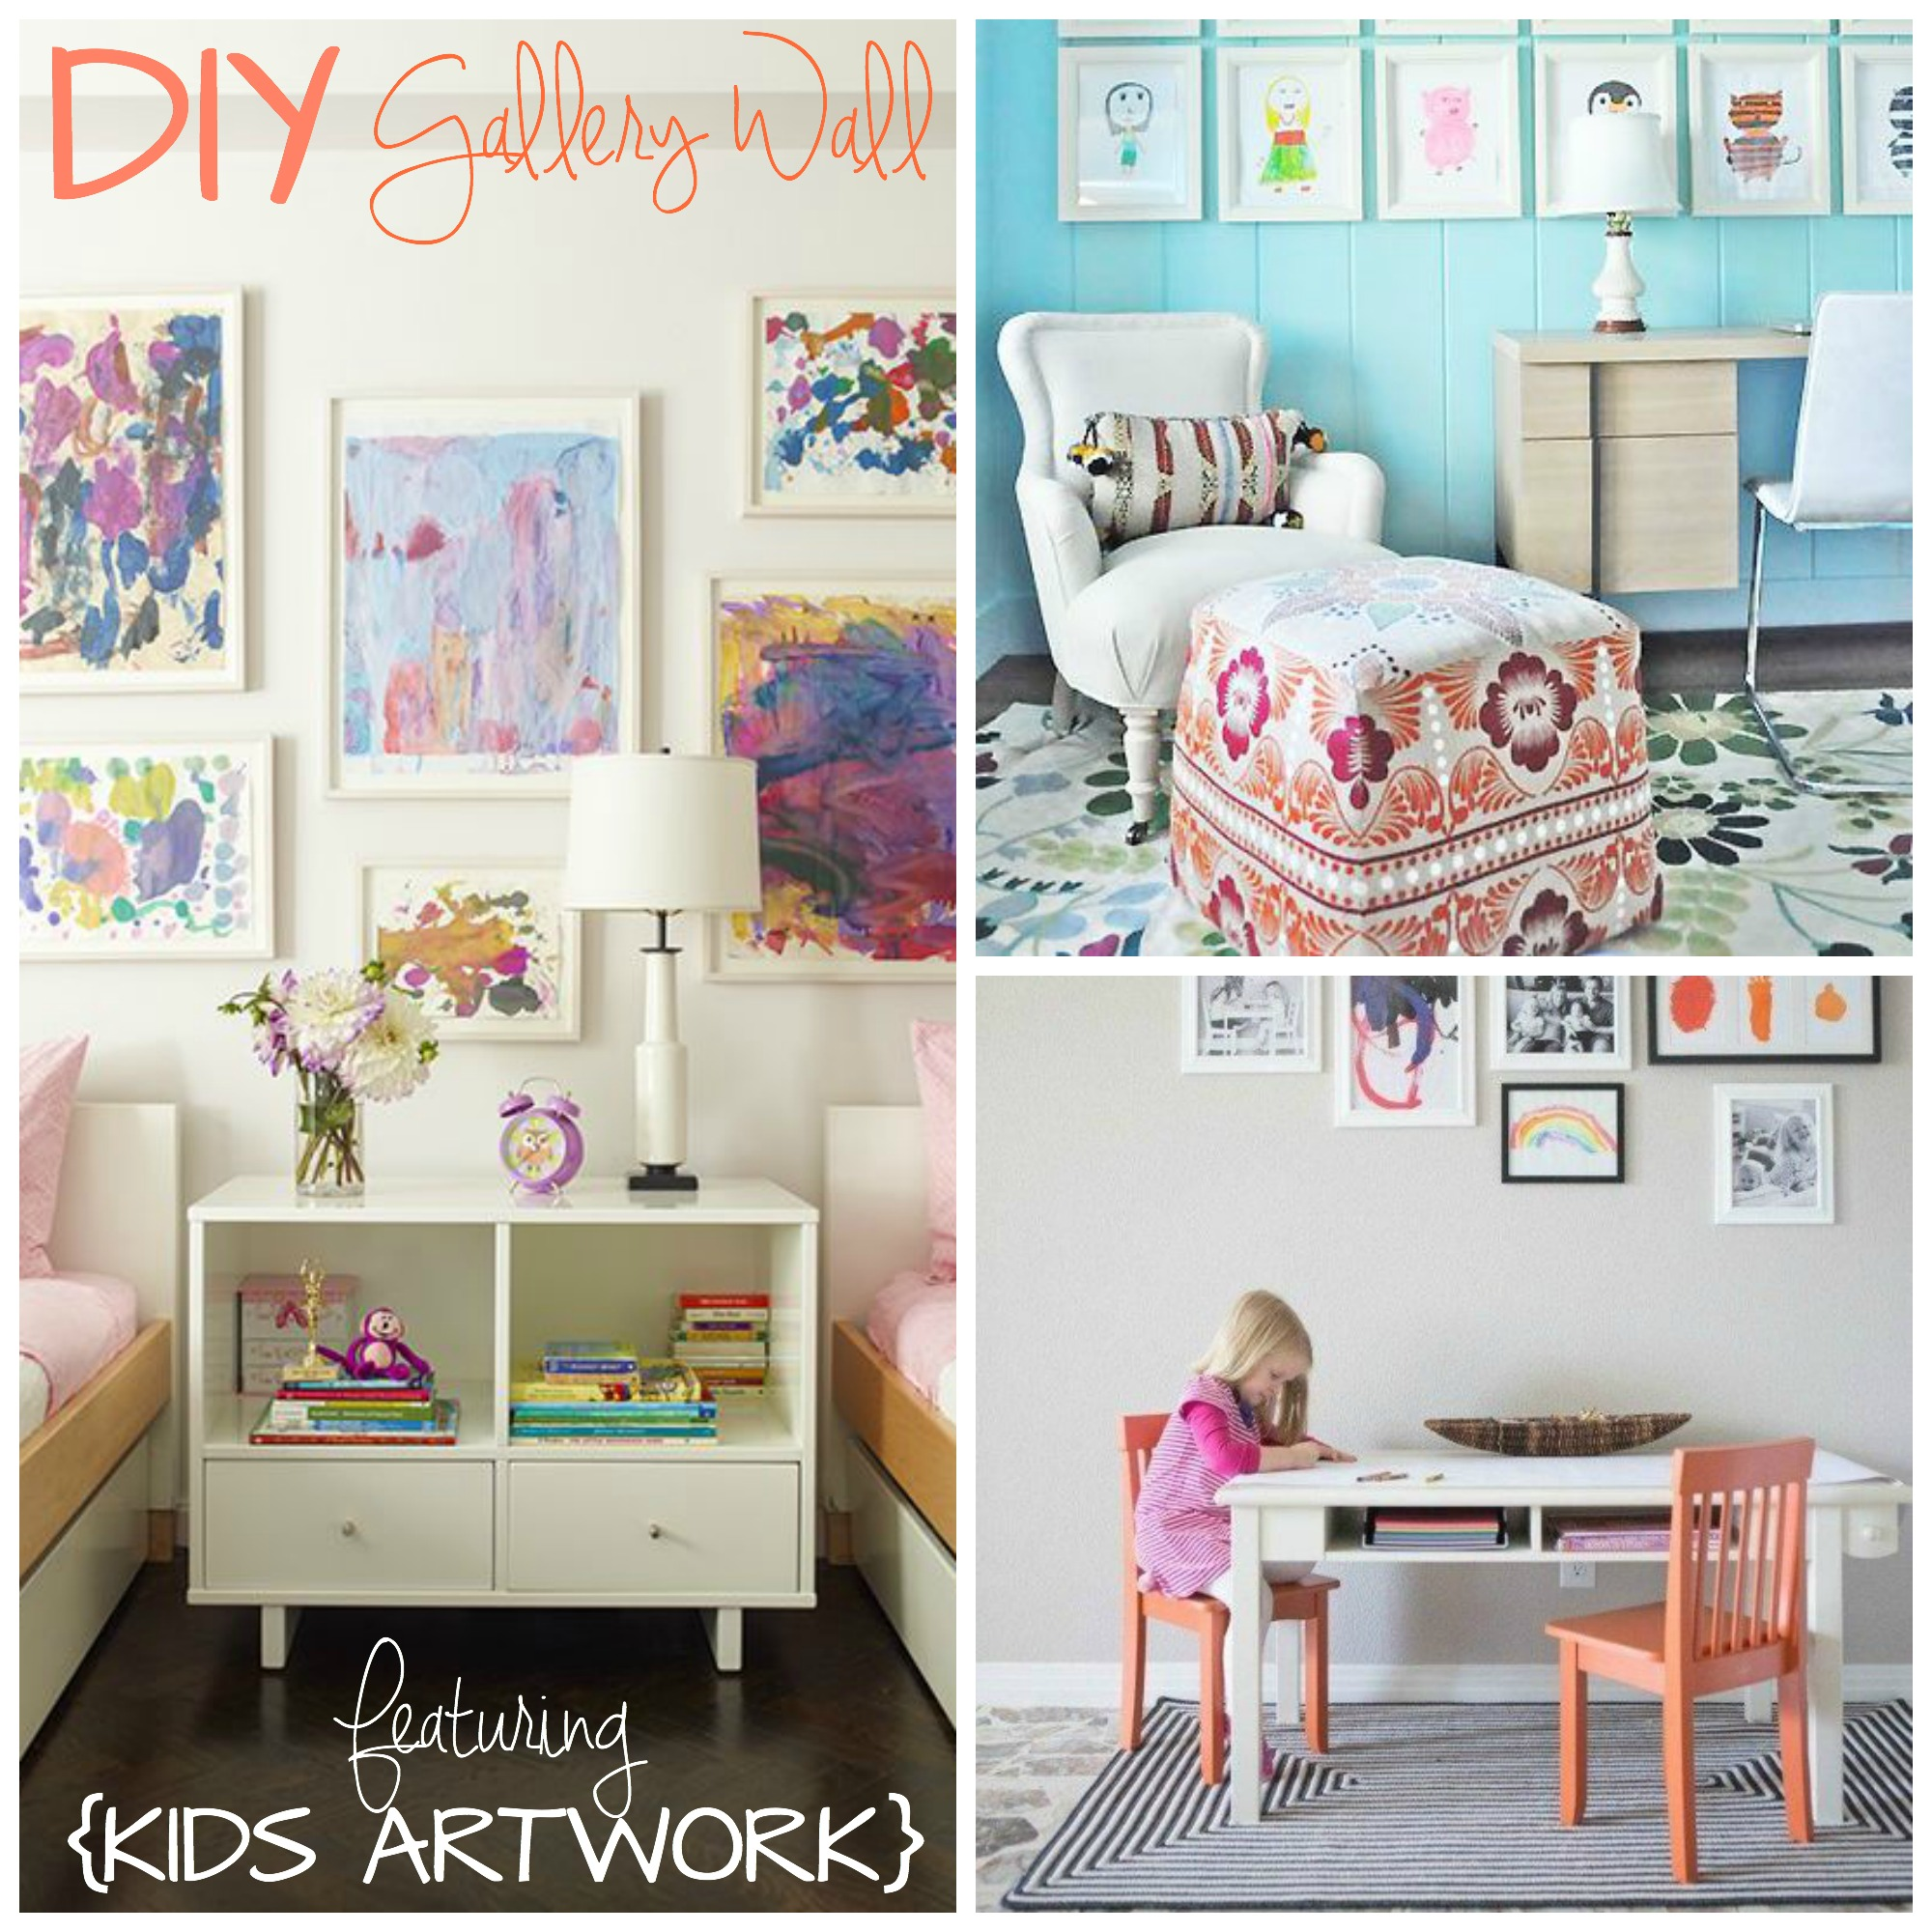 diy gallery walls with kids artwork mindy_cone getcreativejuicecom